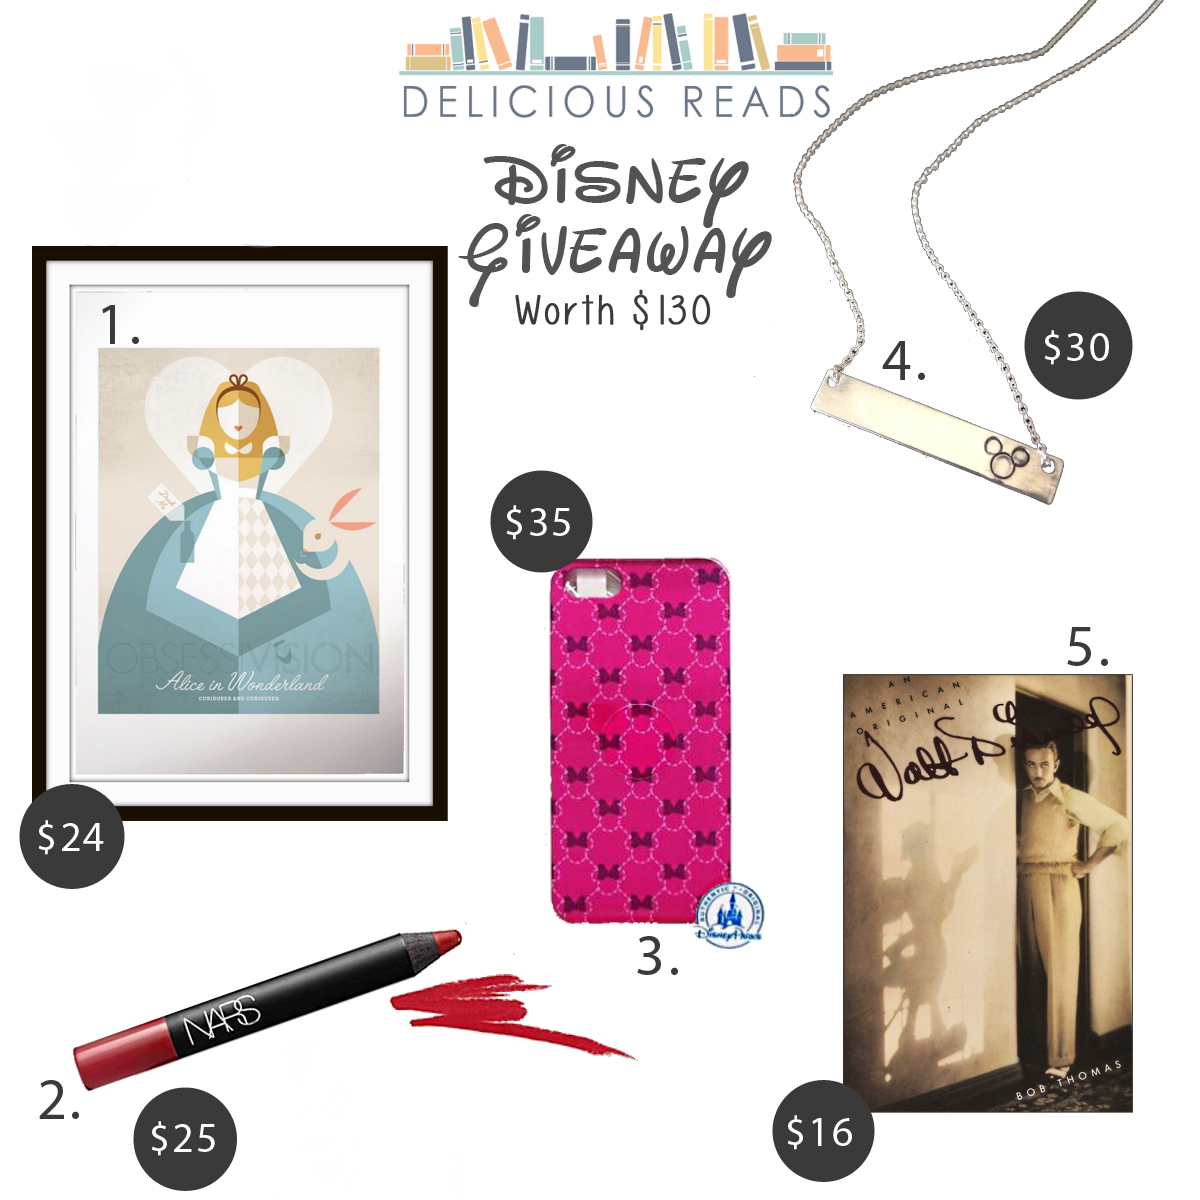 Book club Disney giveaway